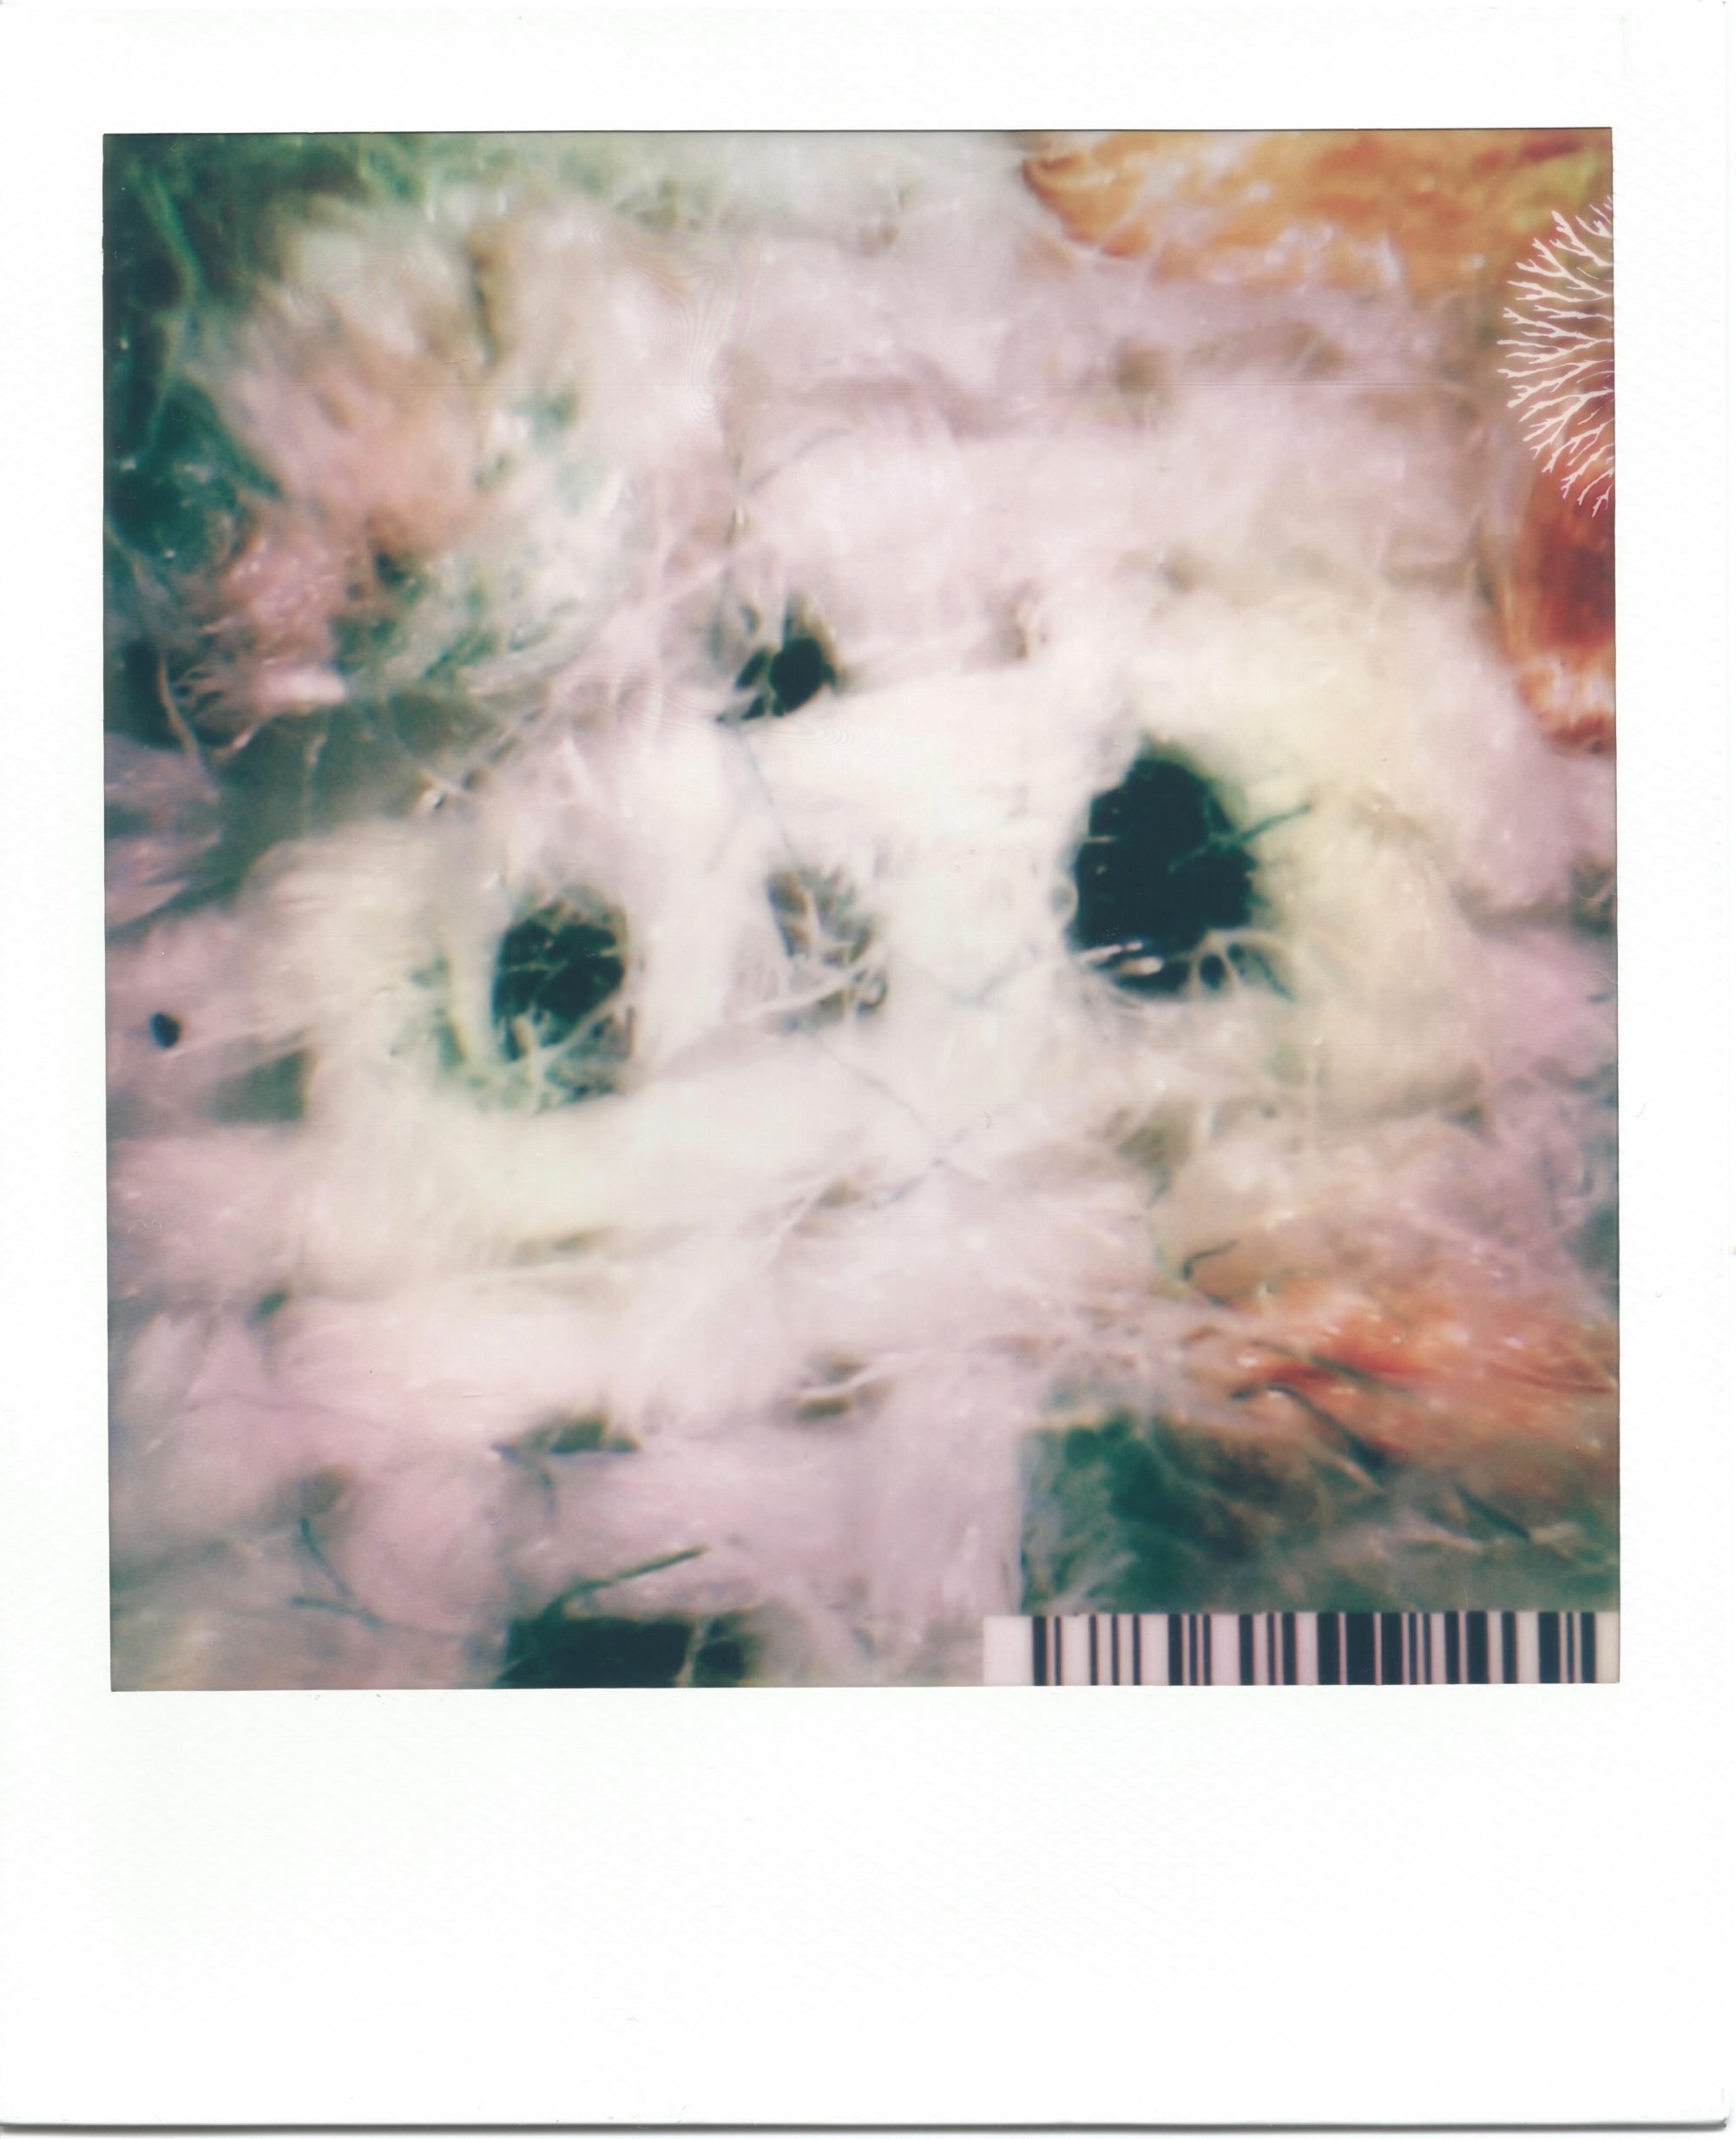 In a white polaroid print frame, is an image of highly magnified textile fibres. Across the image is a woven fabric in a white fibre. Shadows seep through holes across the image, showing the black below. In the corner, orange and pink fibres have mixed with the white. A small barcode sits in the bottom right corner.